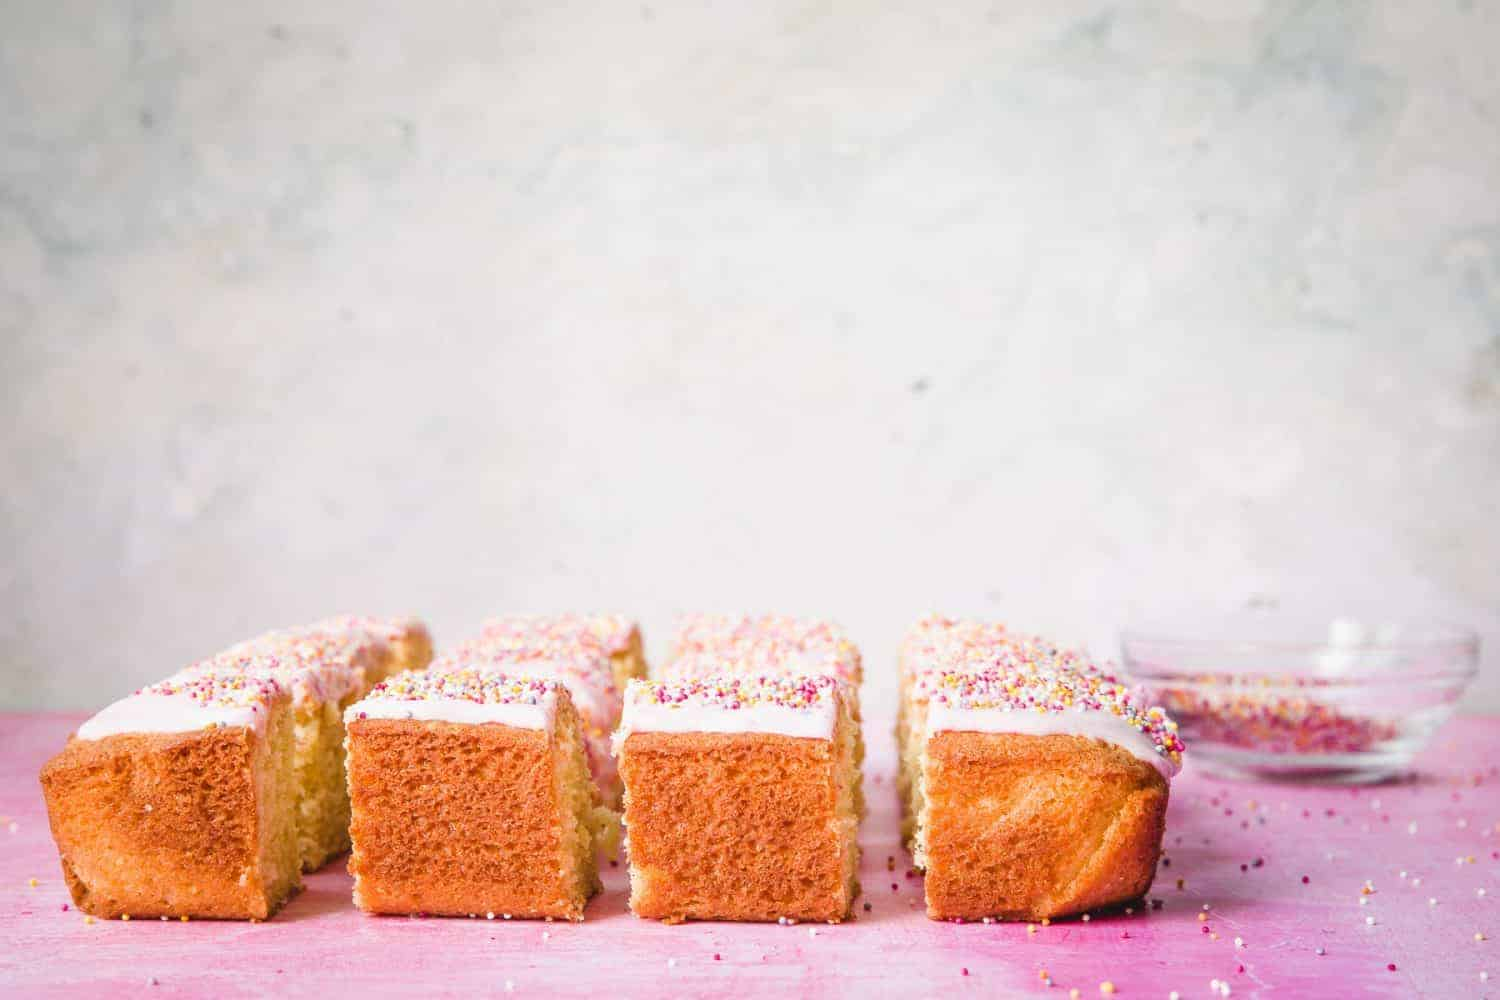 Squares of school cake on a pink surface.